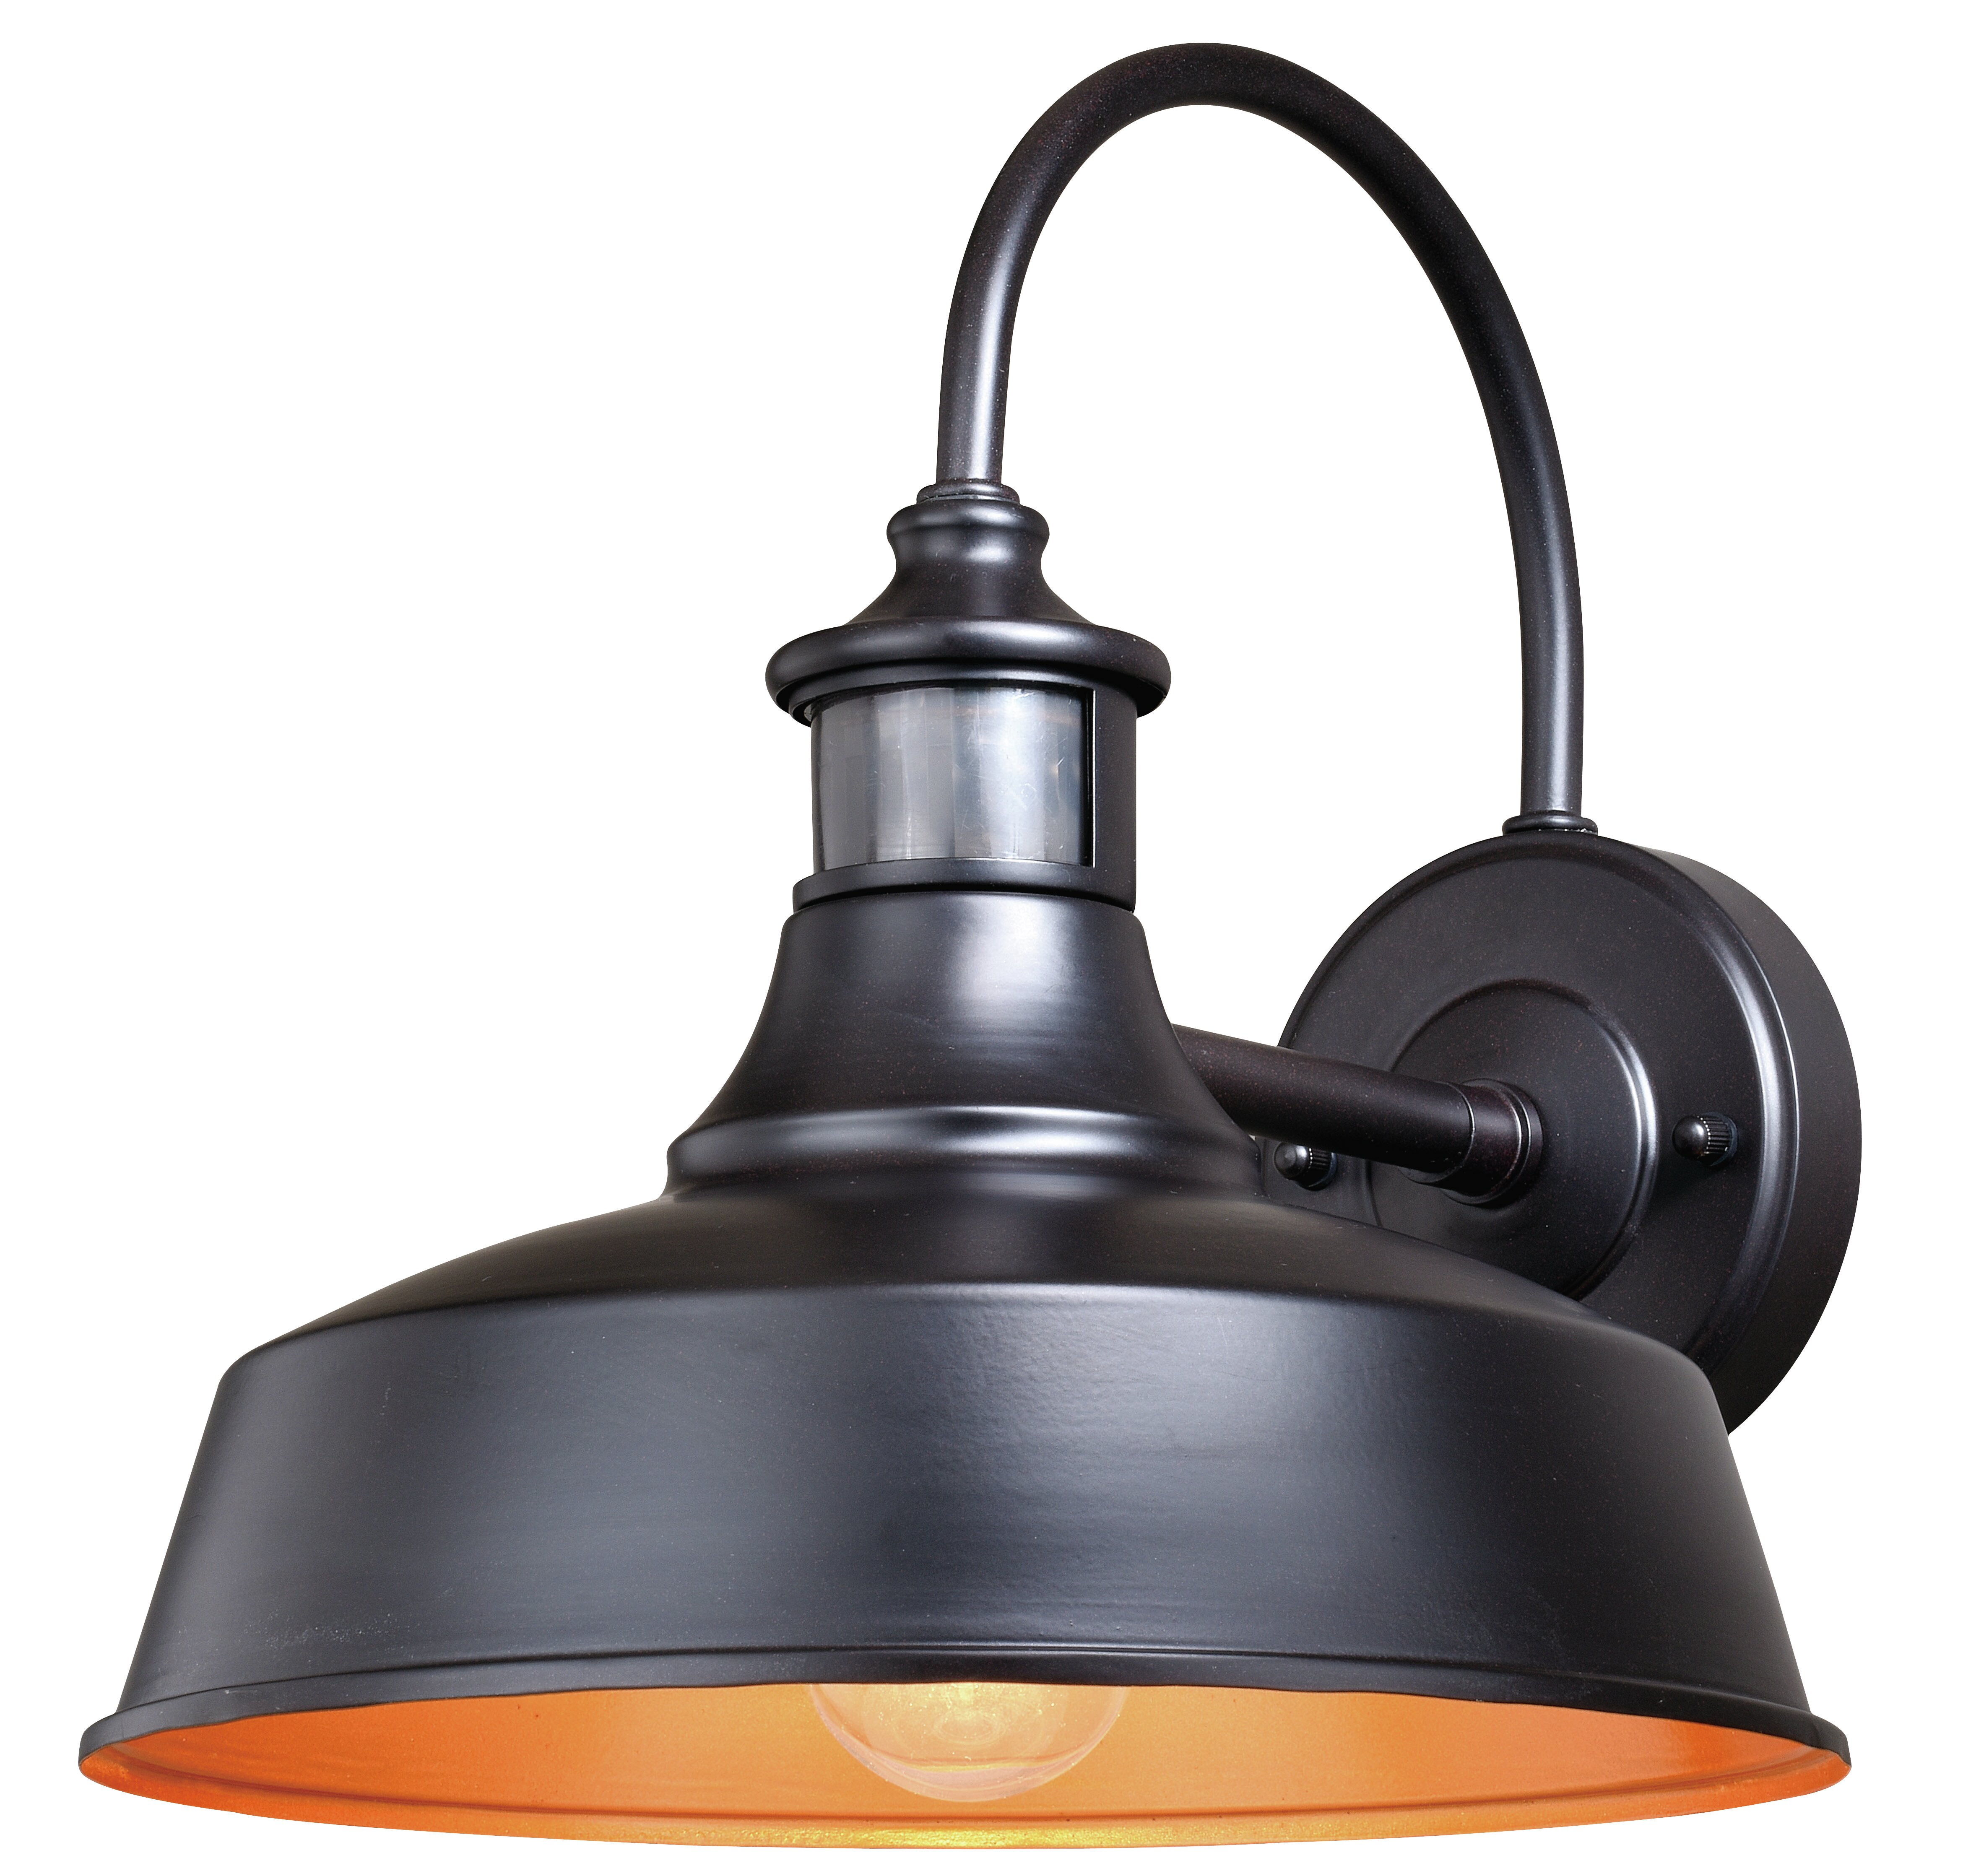 Gracie oaks ziebarth outdoor barn light with motion sensor reviews gracie oaks ziebarth outdoor barn light with motion sensor reviews wayfair aloadofball Image collections